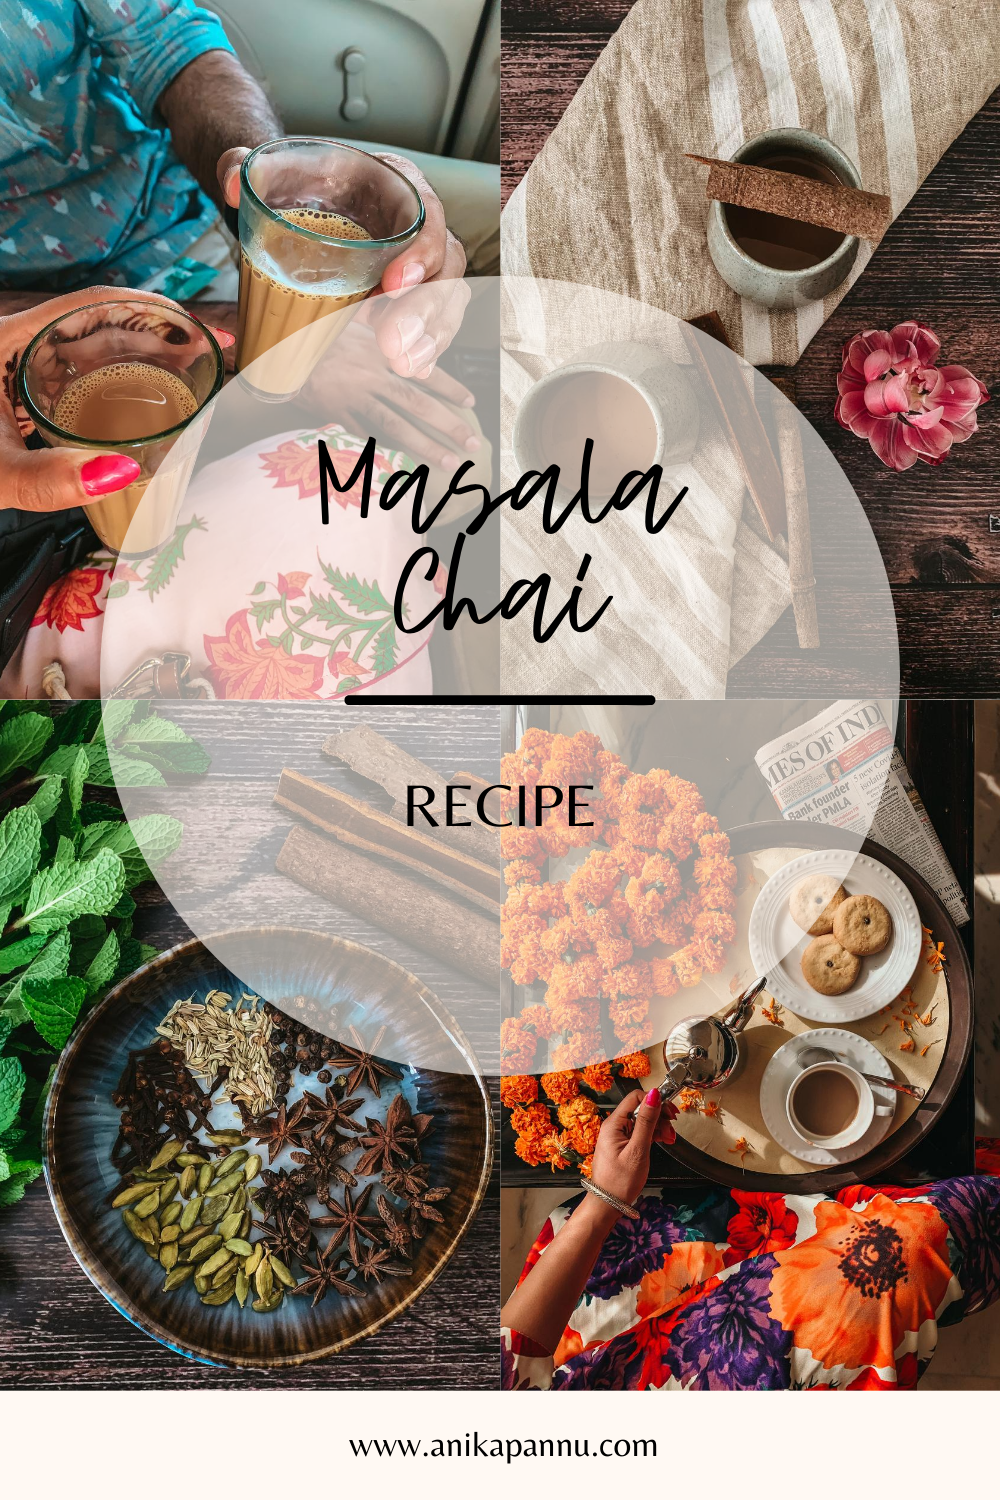 masala chai, indian tea, indian masala chai, indian chai, chai recipe, indian tea recipe, how do you make indian tea, how do you make chai at home, masala chai tea recipe, masala chai spice mix, kadak masala chai recipe, masala chai spices, street tea india recipe, indian tea culture, indian chai culture